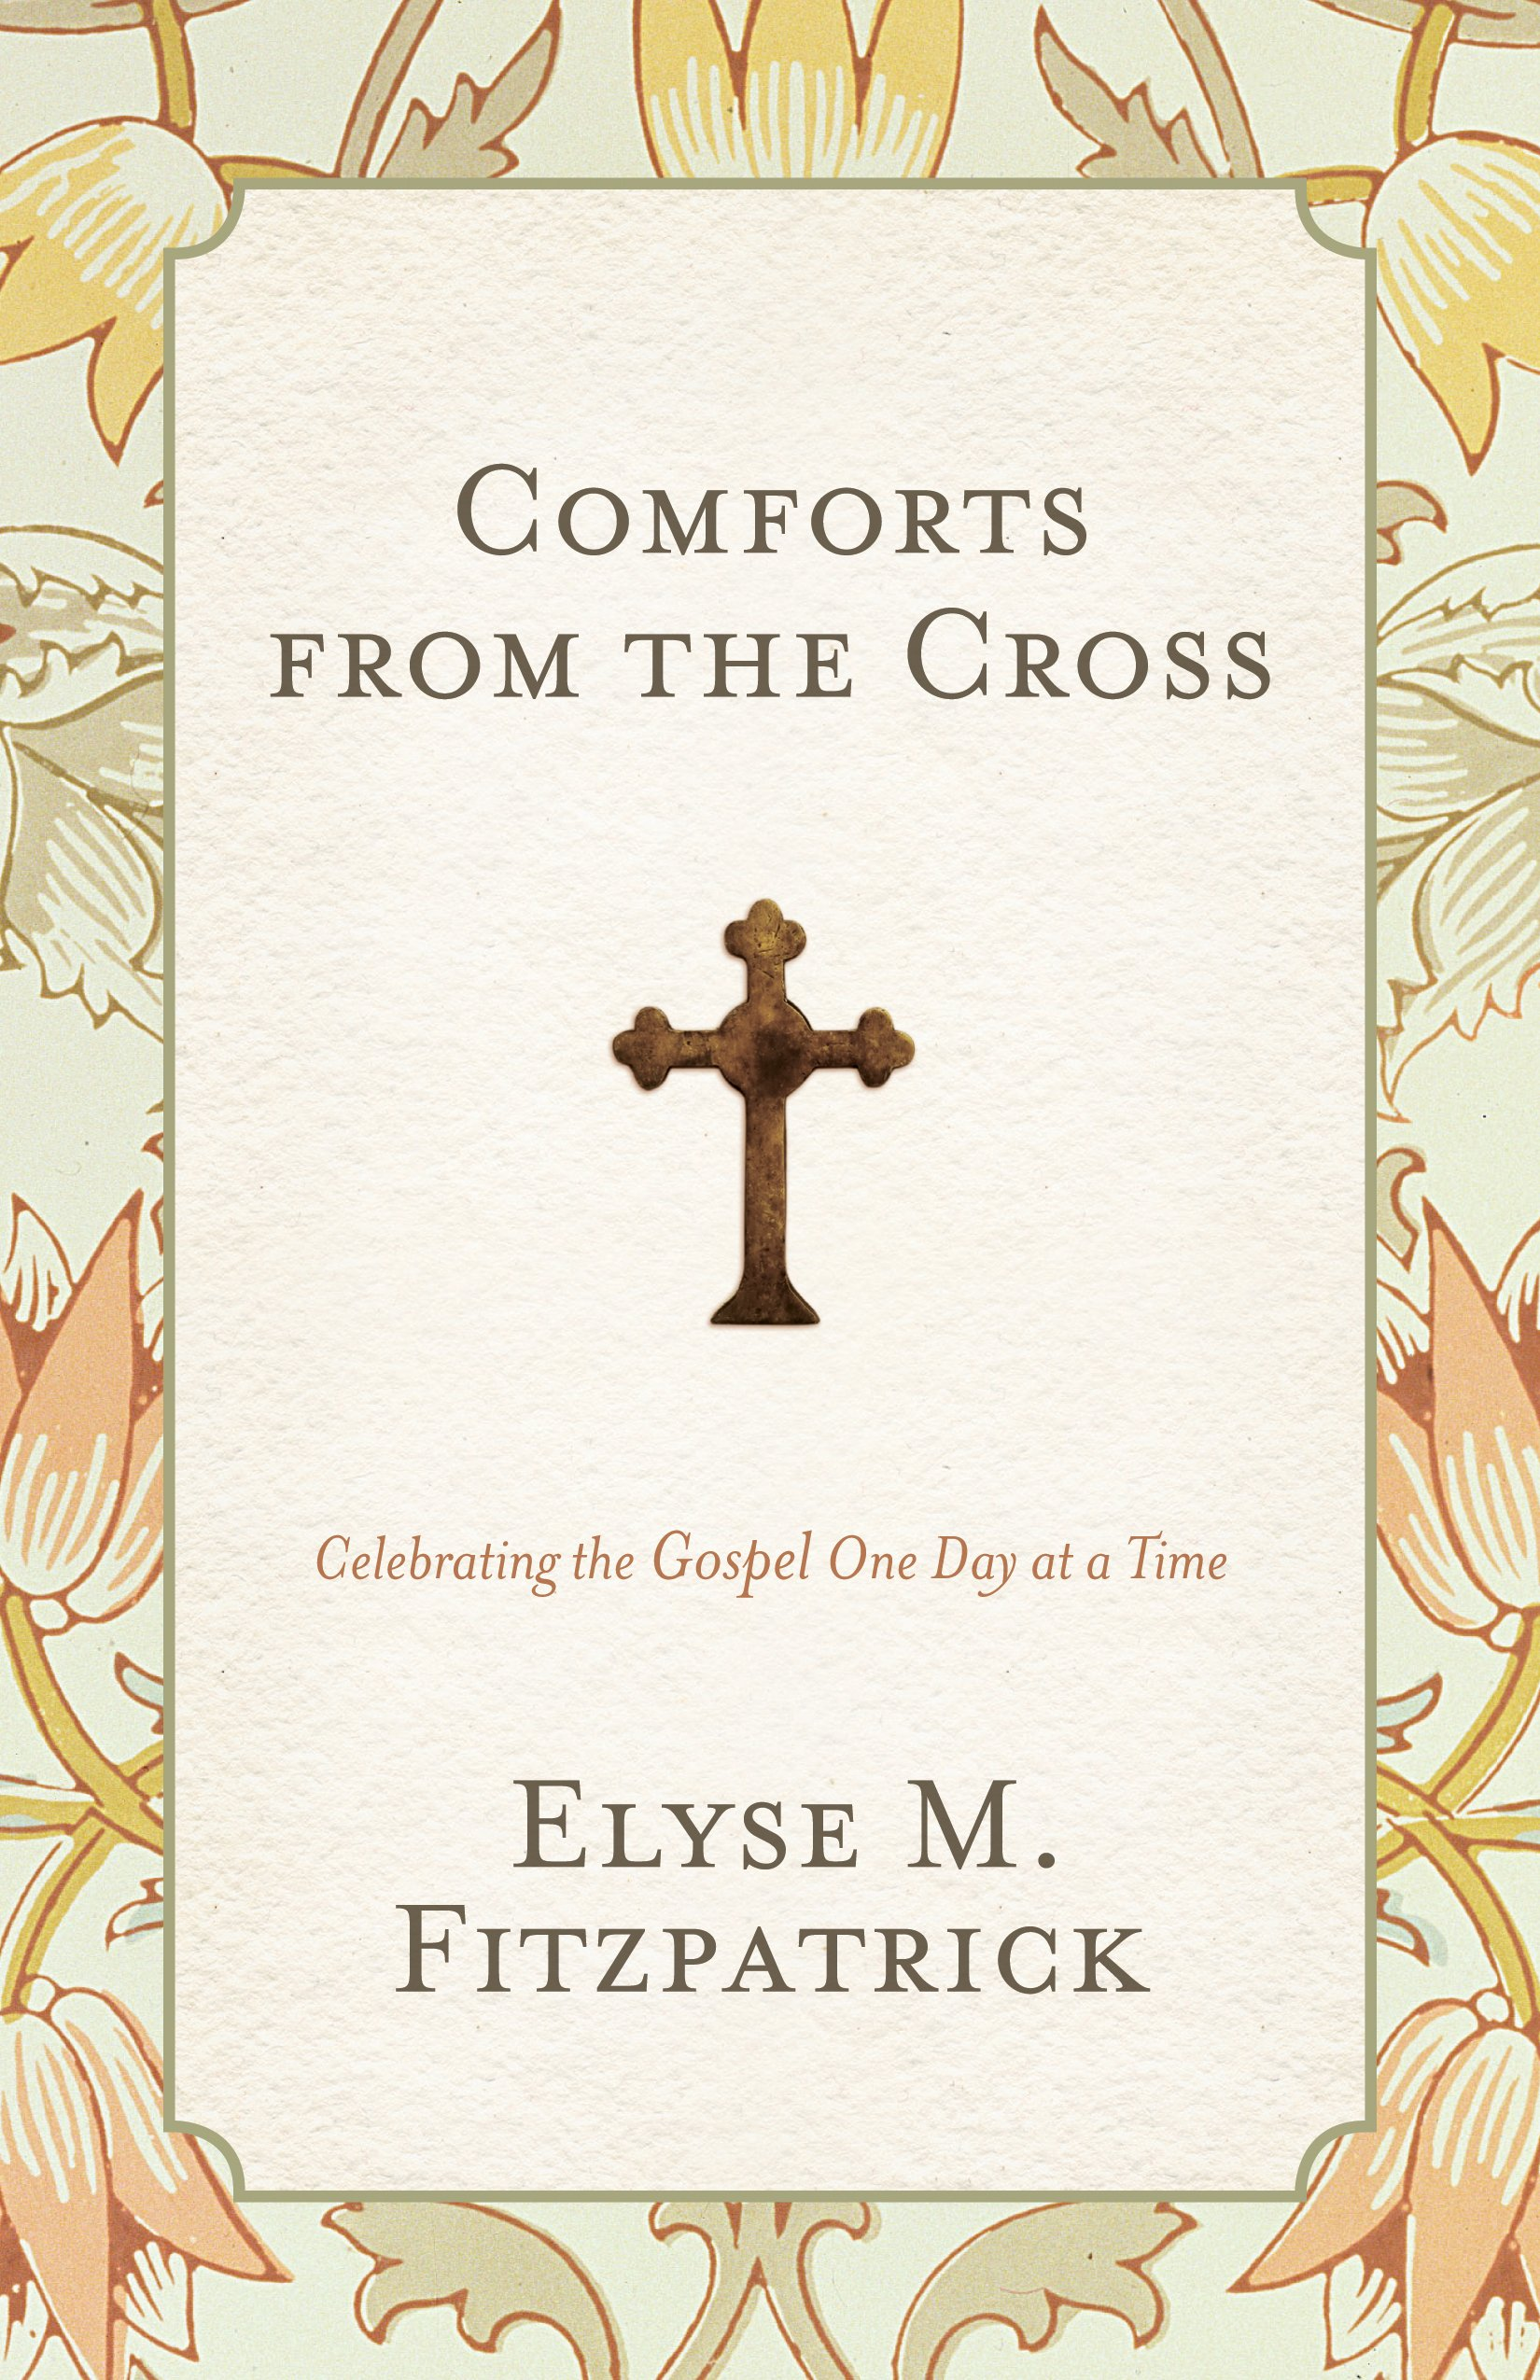 Comforts from the cross redesign celebrating the gospel one day comforts from the cross redesign celebrating the gospel one day at a time elyse m fitzpatrick 9781433528217 amazon books biocorpaavc Gallery